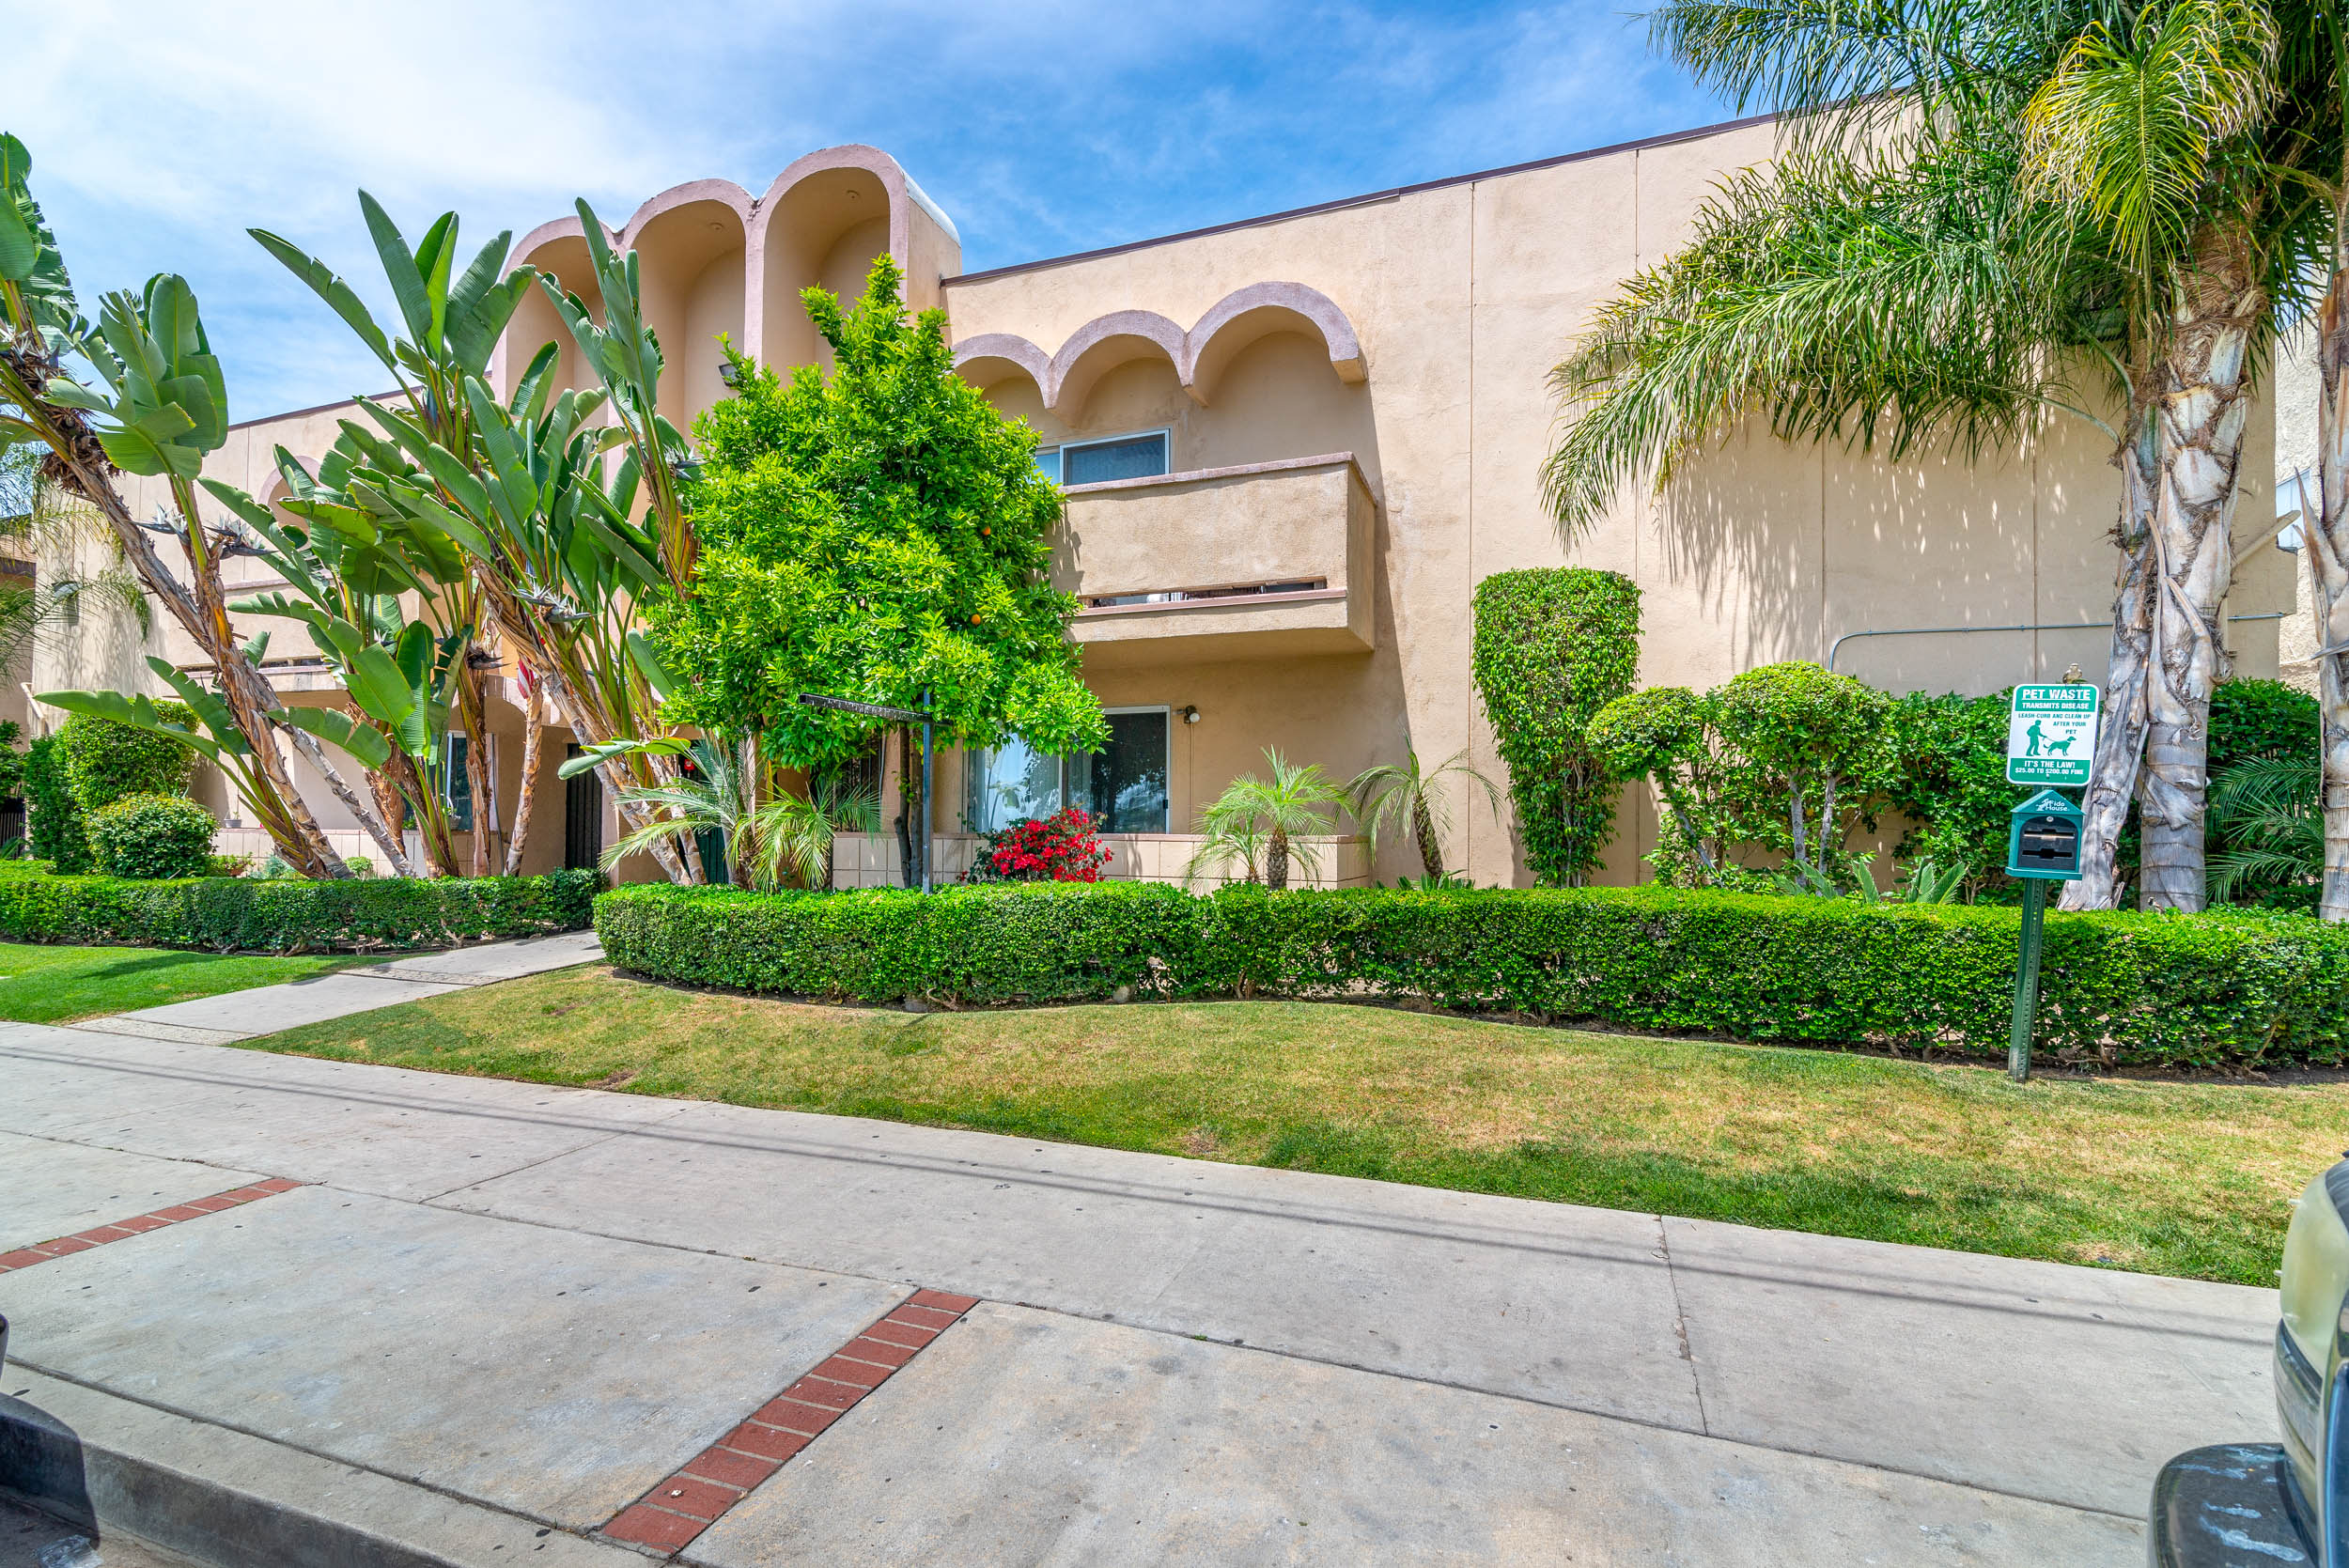 20 Best Apartments For Rent Under 1800 In Simi Valley Ca